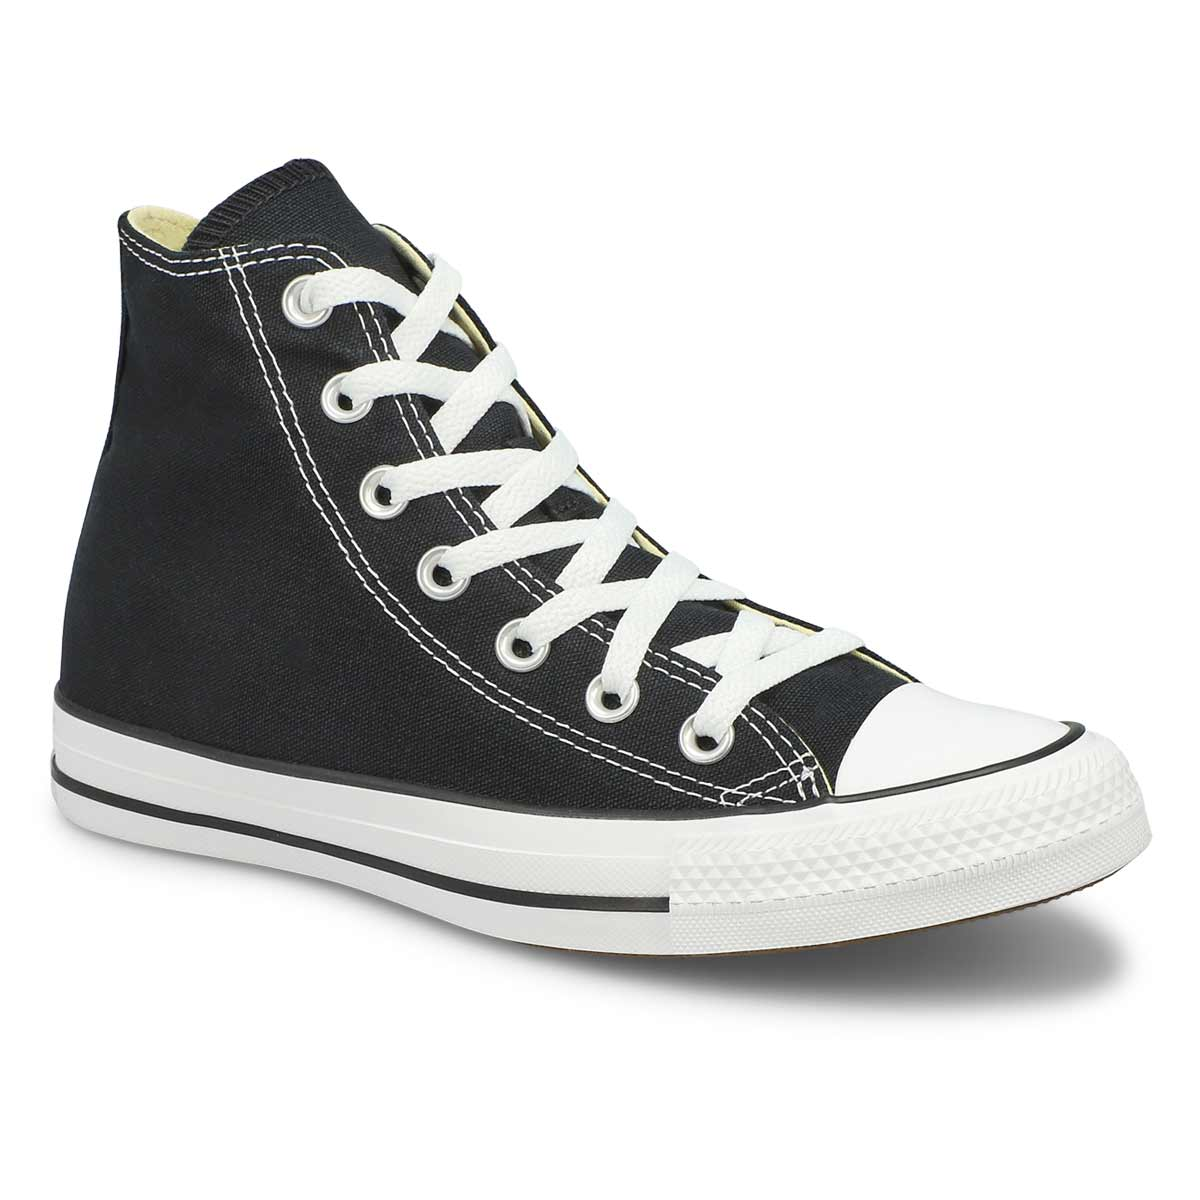 Lds CT All Star Core Hi blk sneaker